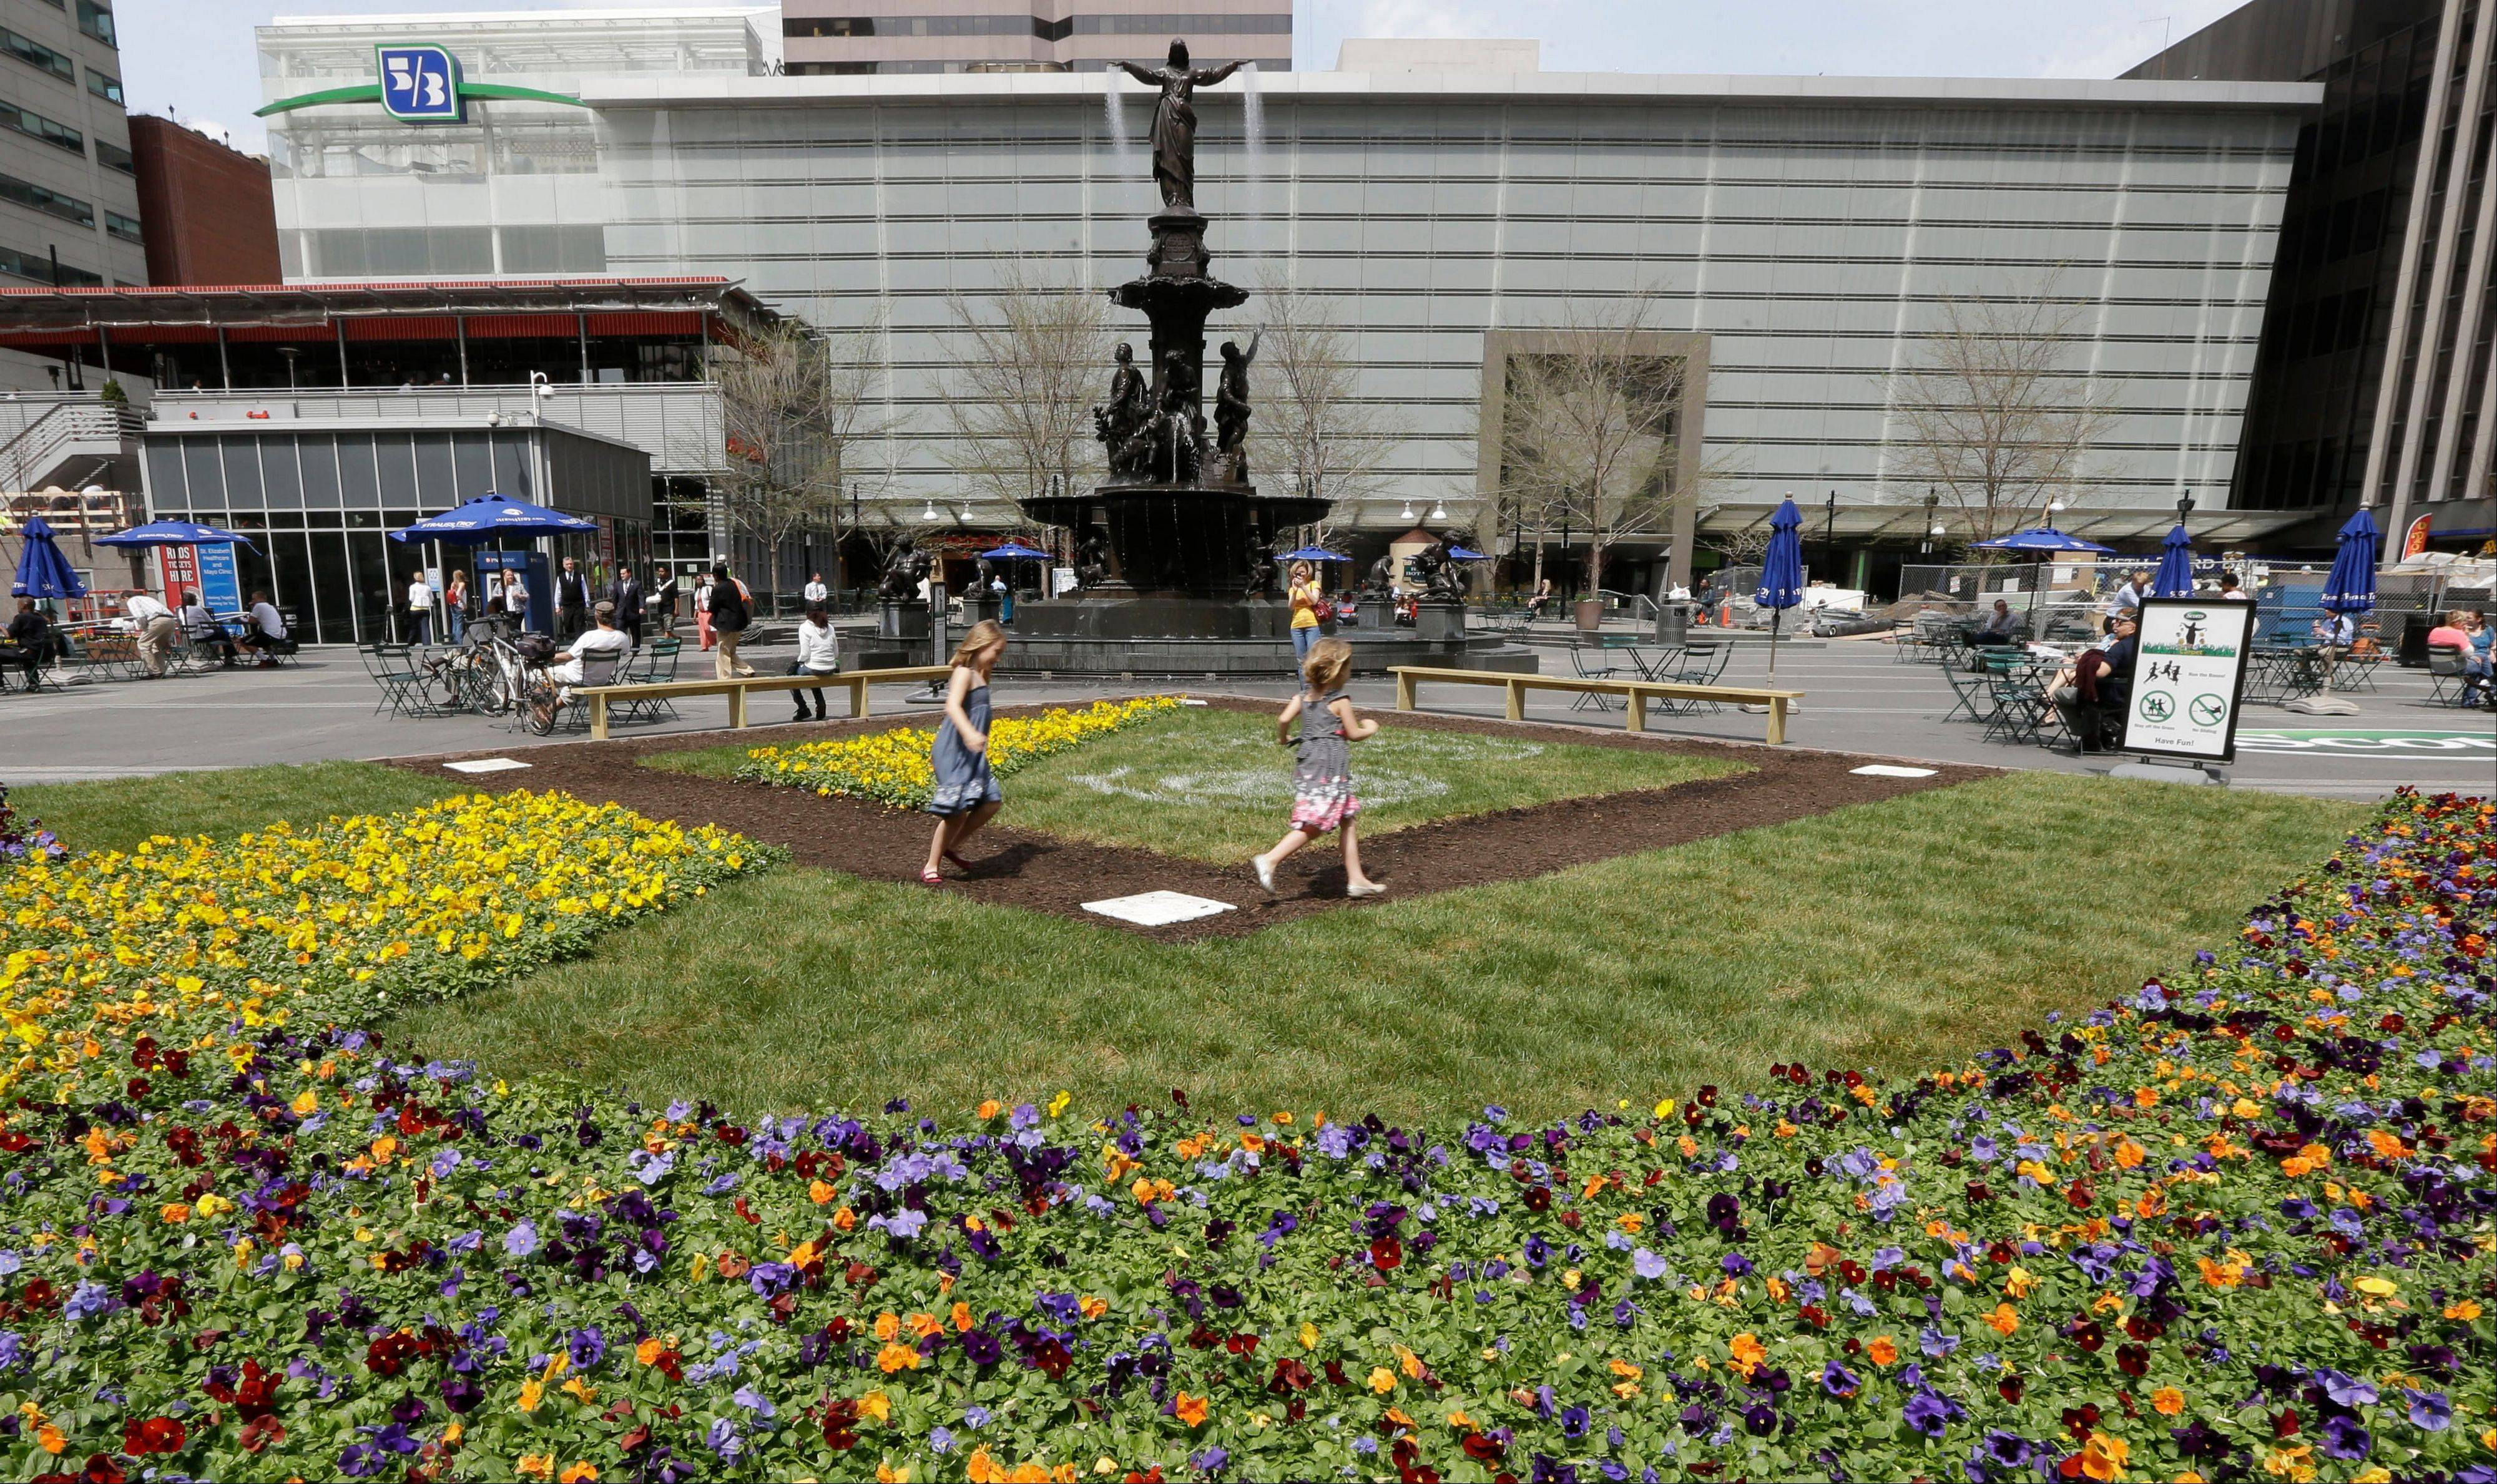 Hannah Bailey, left, runs the bases with sister Eva Bailey on a baseball diamond floral display set up on Fountain Square in Cincinnati.